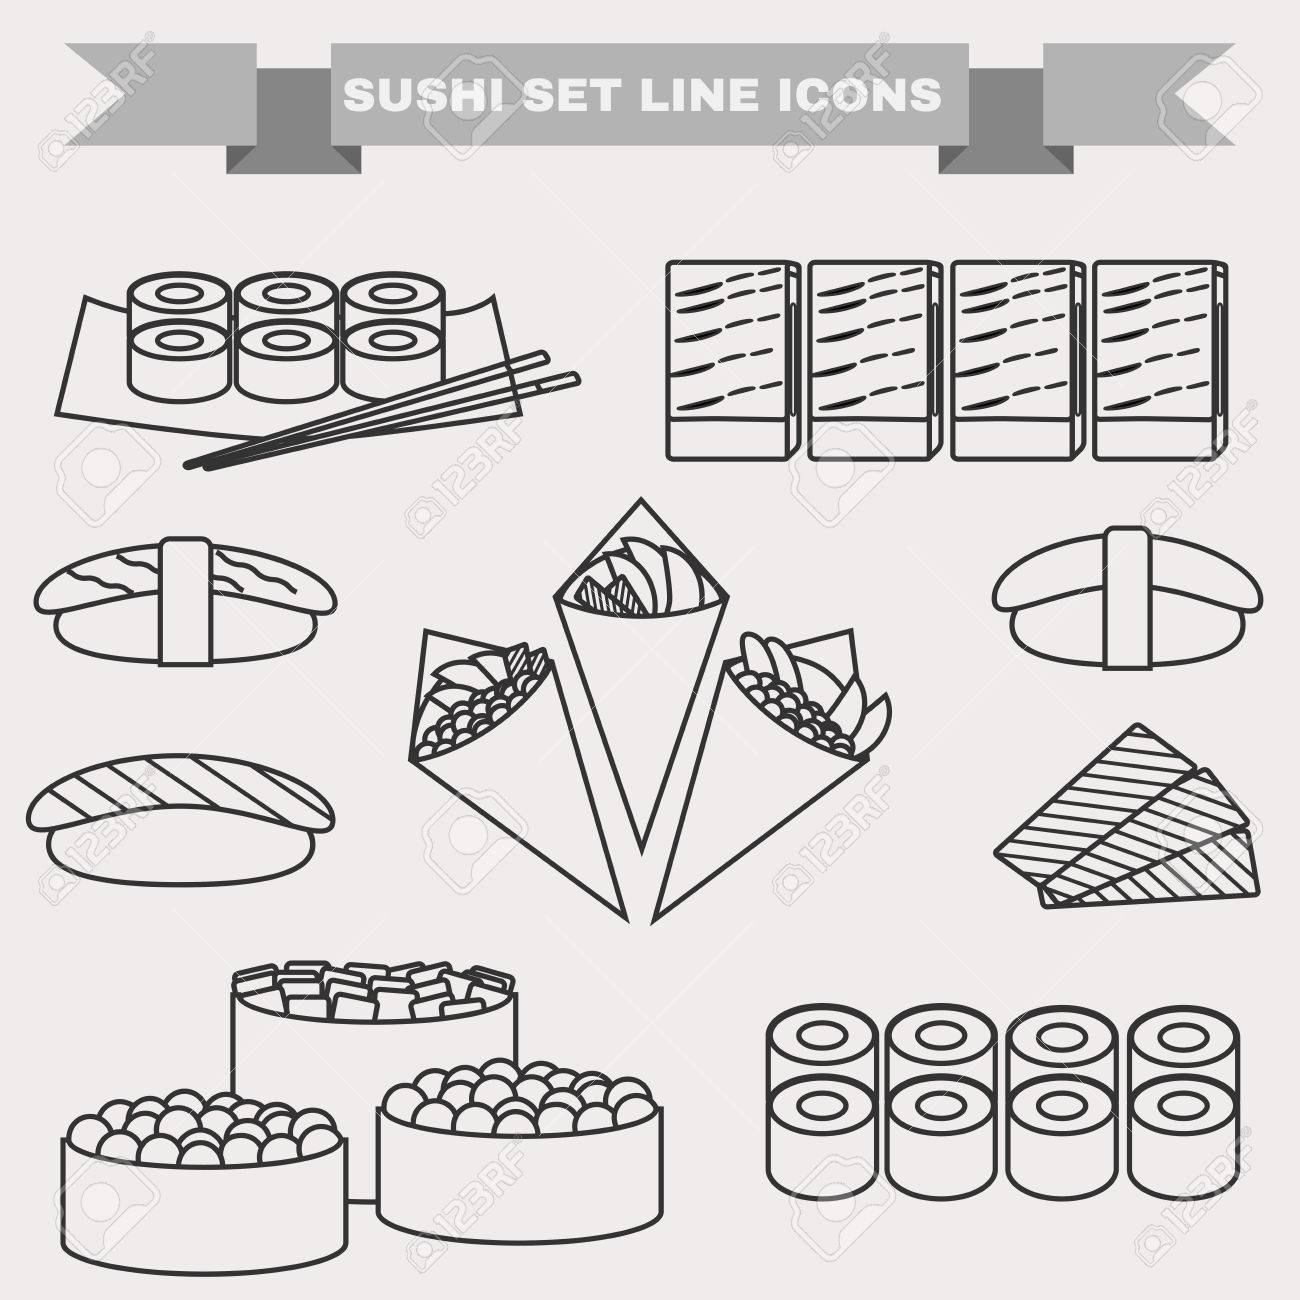 Big Icon Set Of Sushi Different Sushi Types Platter With Chopsticks